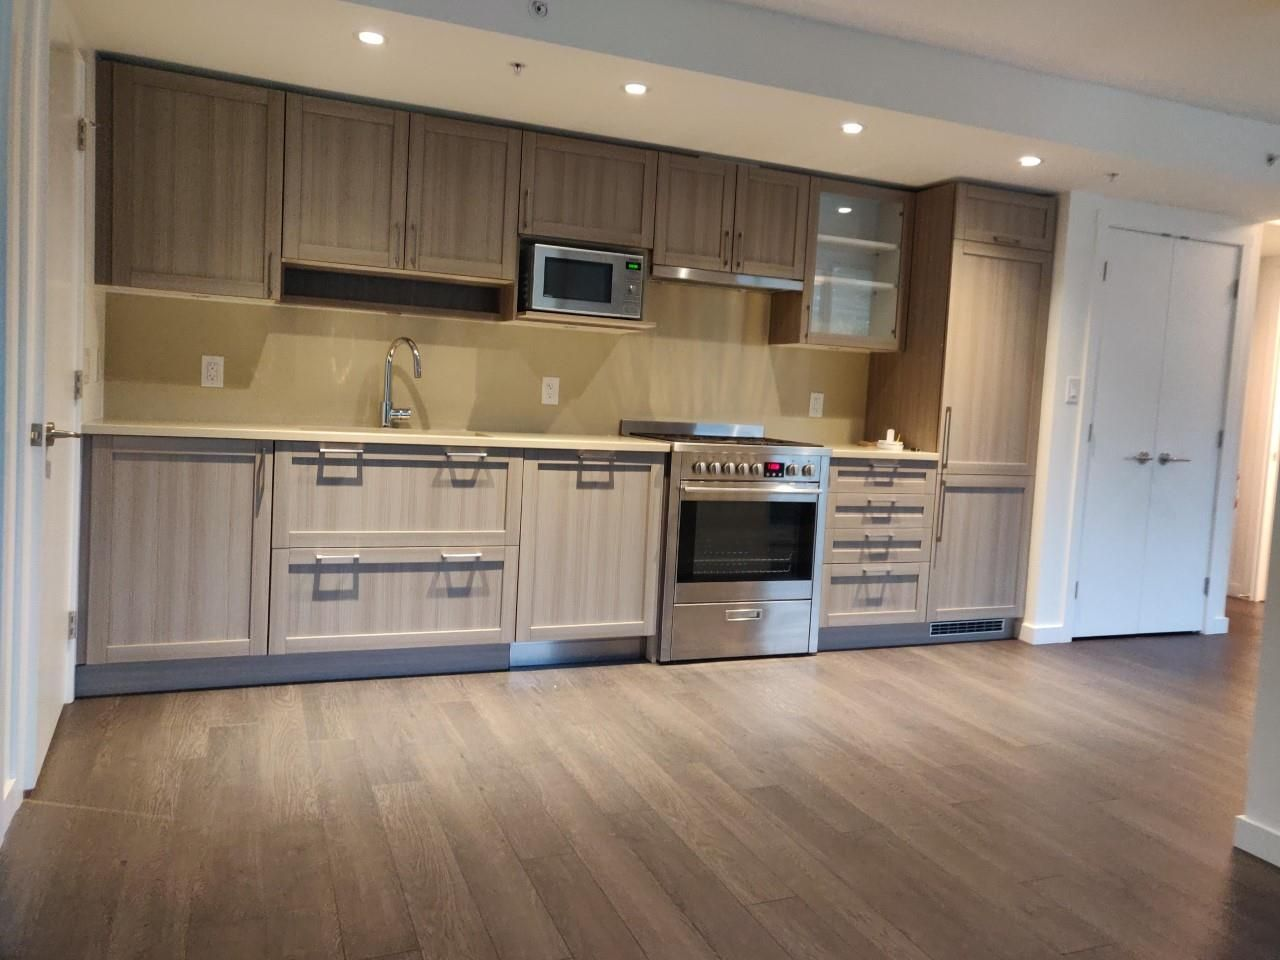 """Photo 6: Photos: 205 5515 BOUNDARY Road in Vancouver: Collingwood VE Condo for sale in """"WALL CENTER CETNRAL PARK"""" (Vancouver East)  : MLS®# R2516109"""